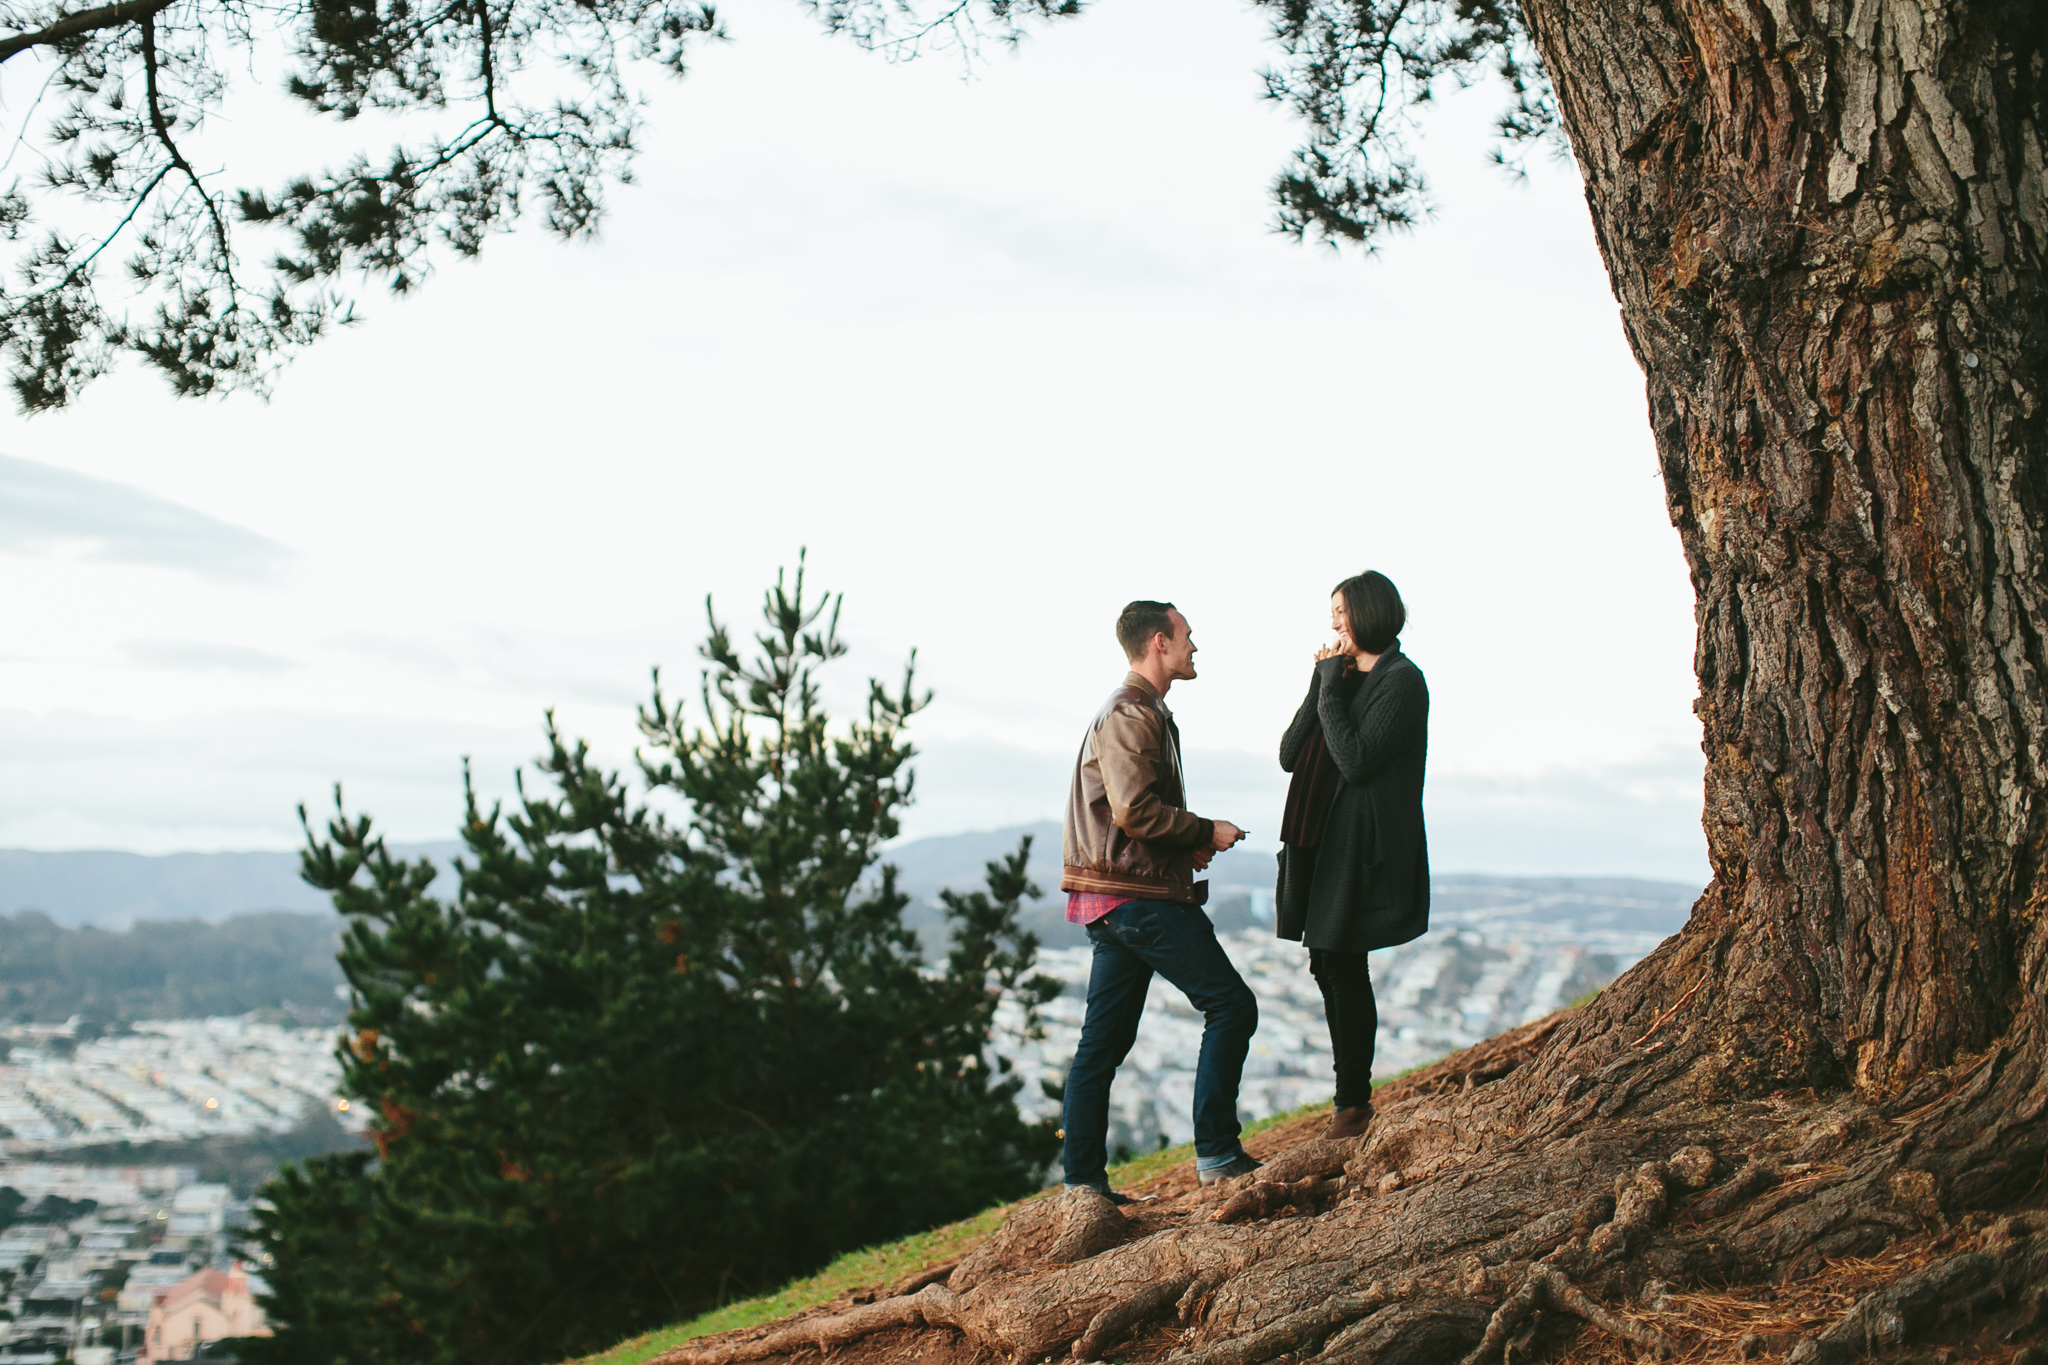 Sunee+Adam-Proposal-KellyBoitanoPhotography_WEB20151229_0004